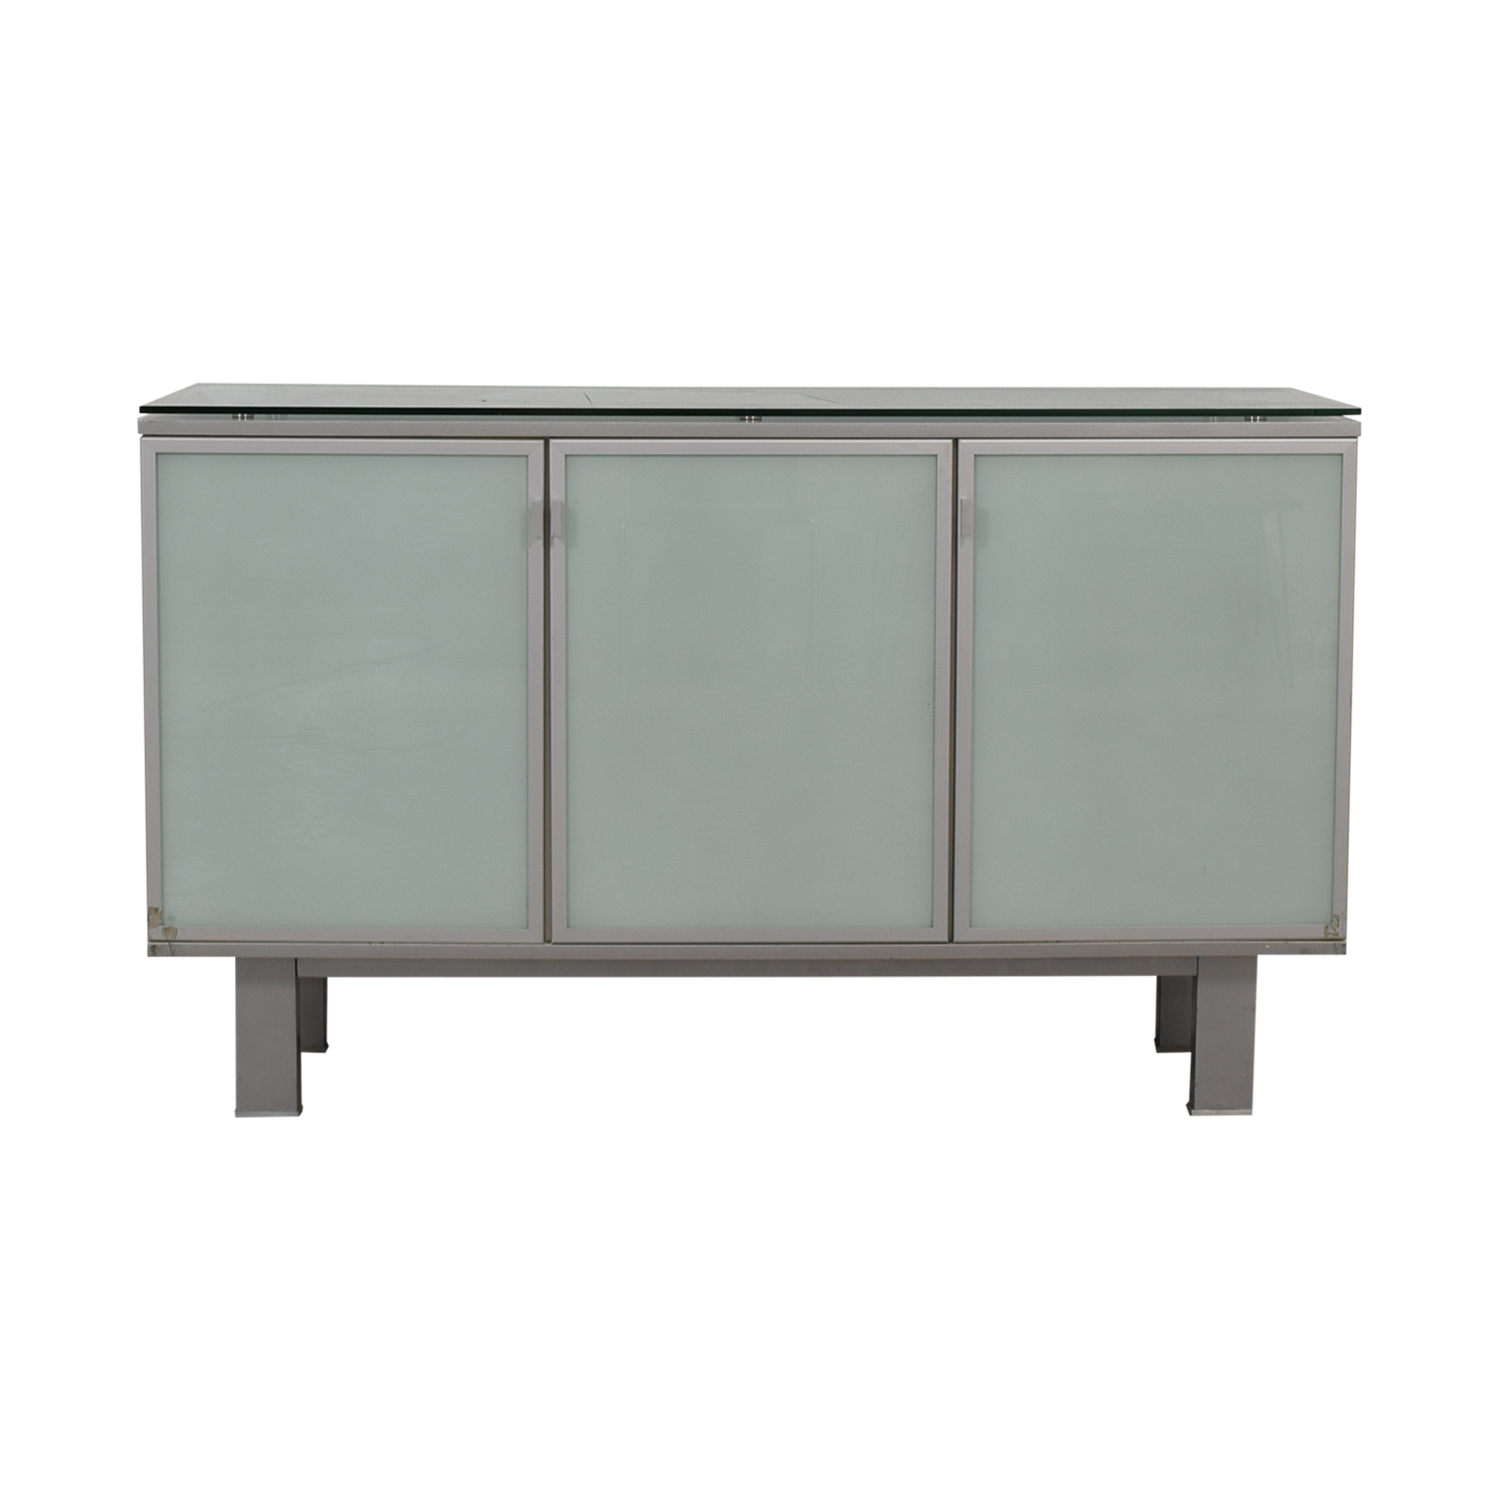 89 Off Green Glass Credenza Storage